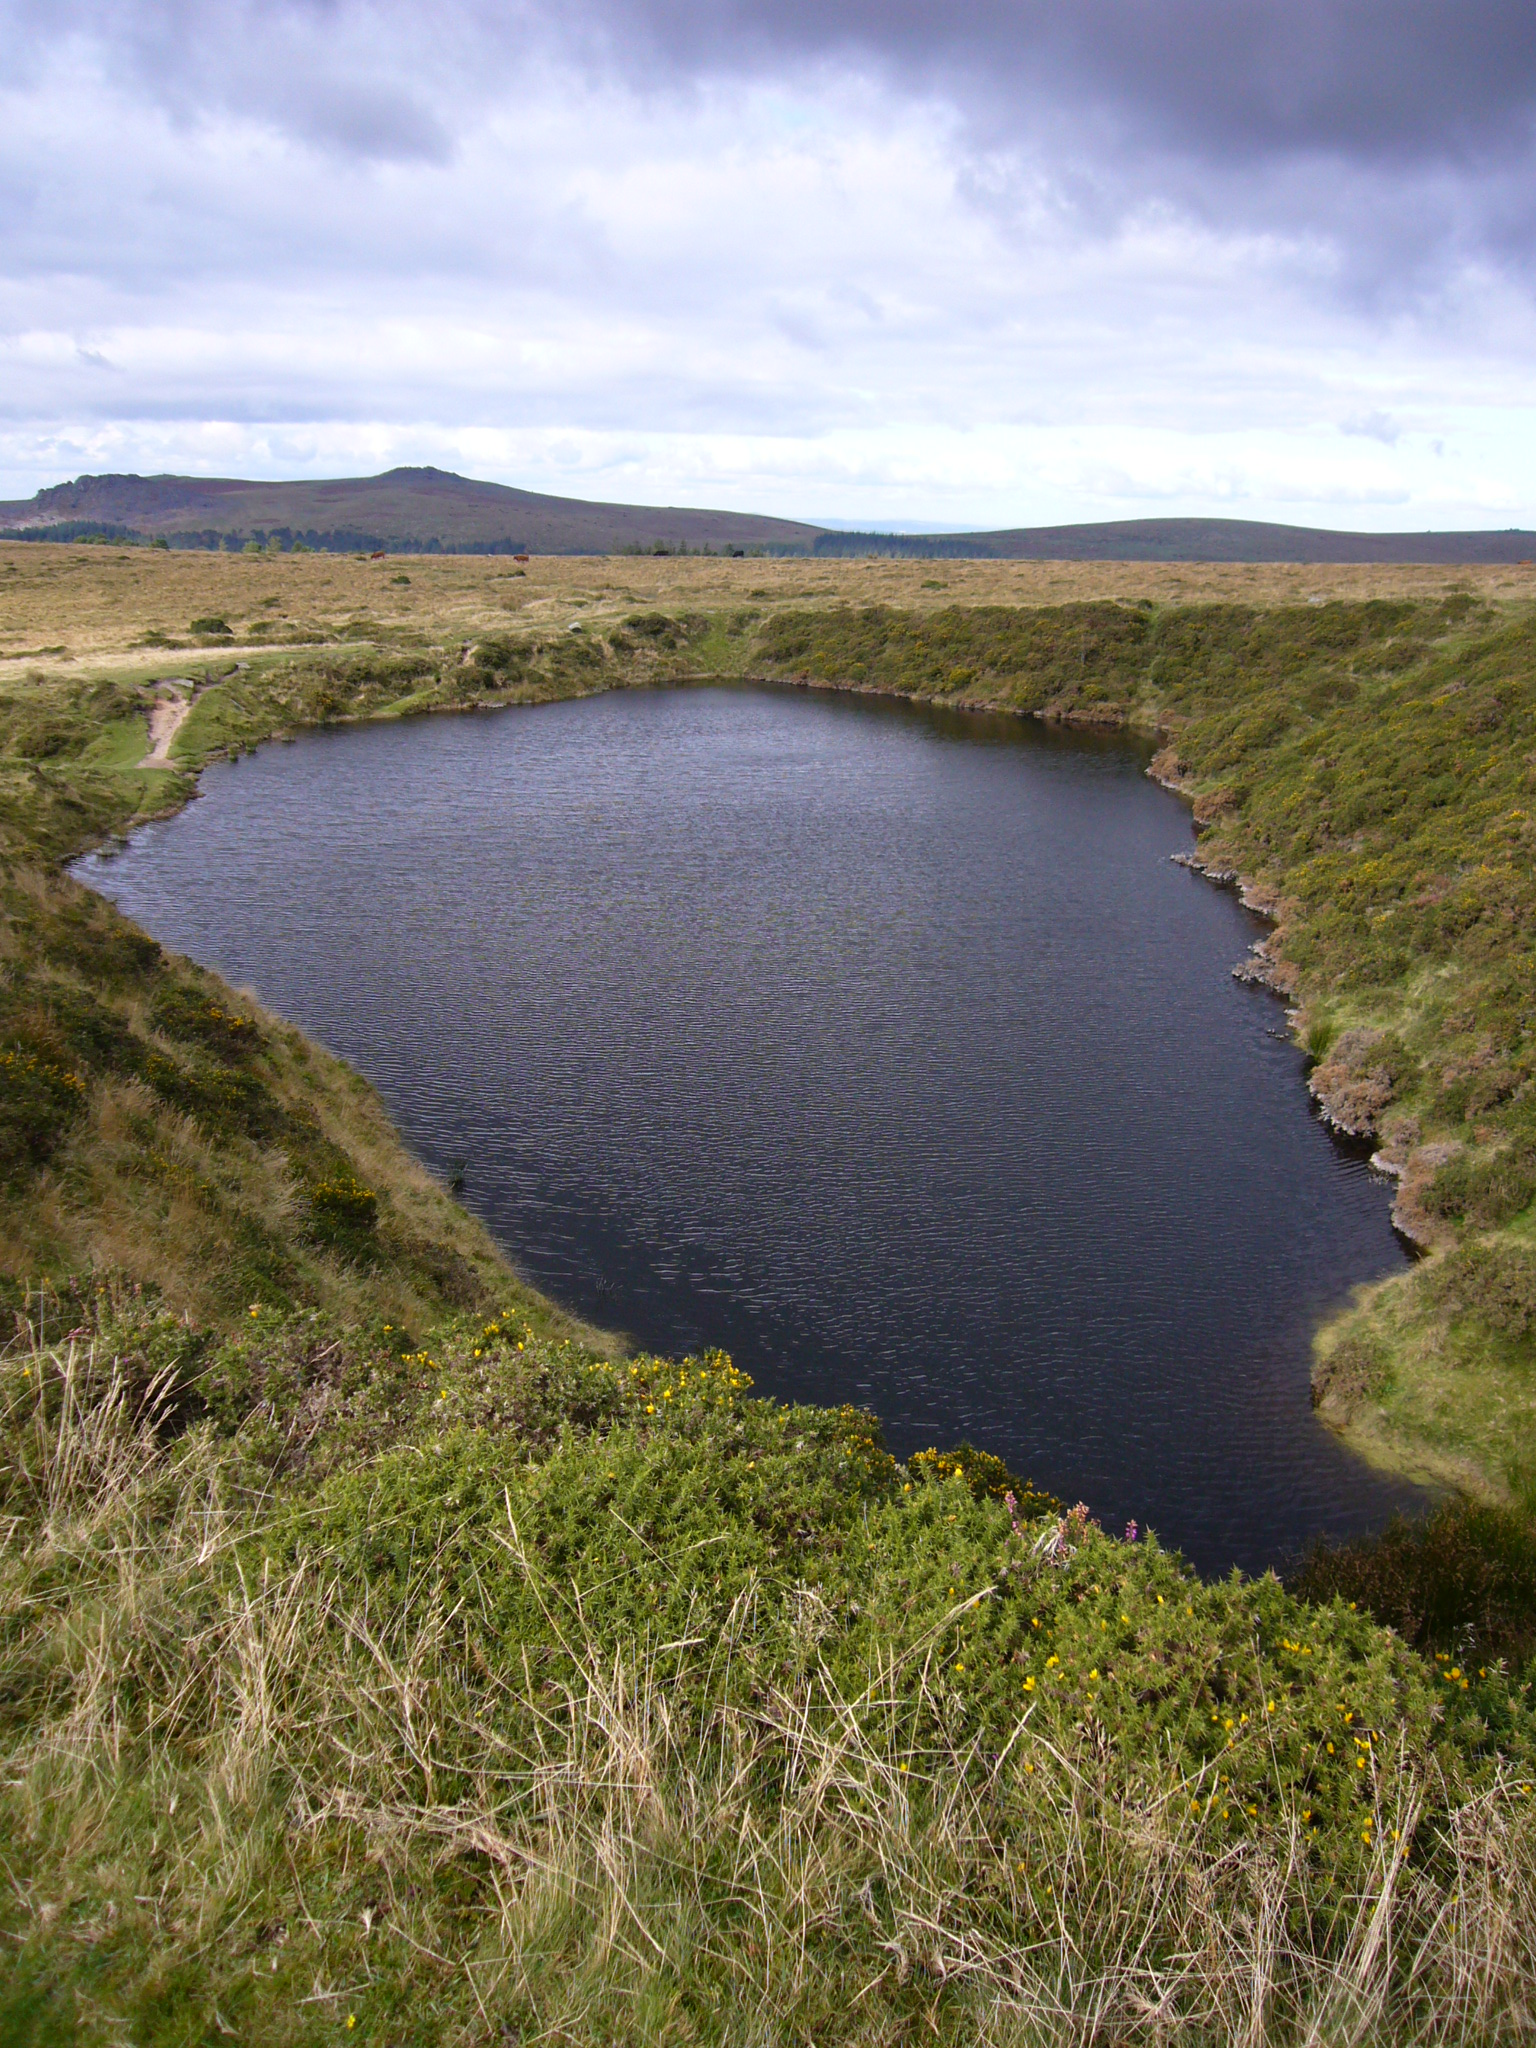 An image of Crazywell Pool, home to its own lake folklore